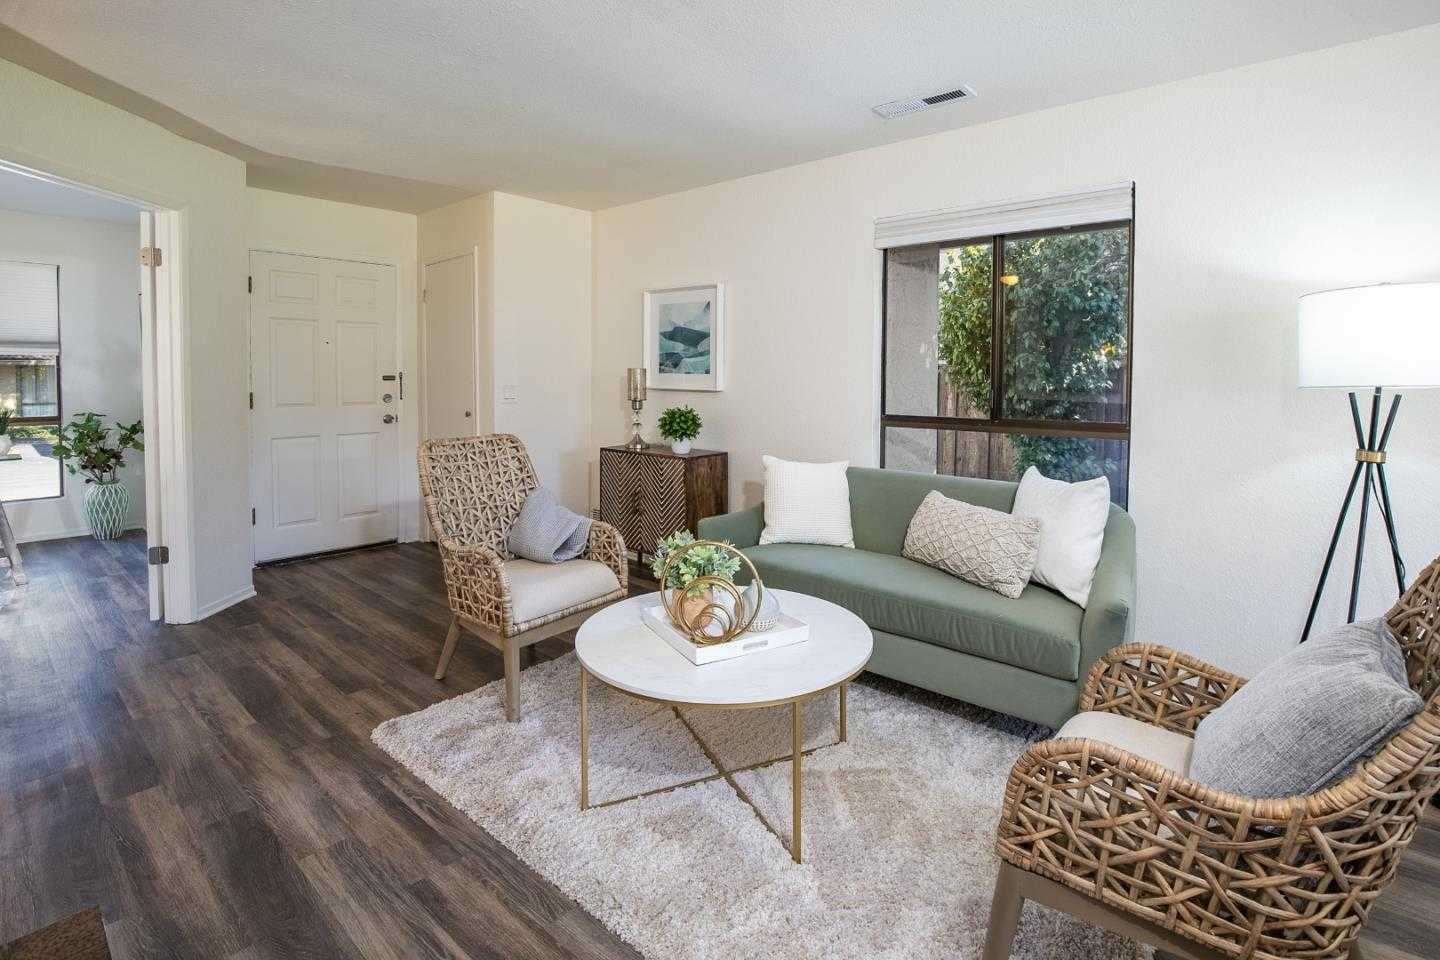 $625,000 - 3Br/2Ba -  for Sale in Santa Cruz